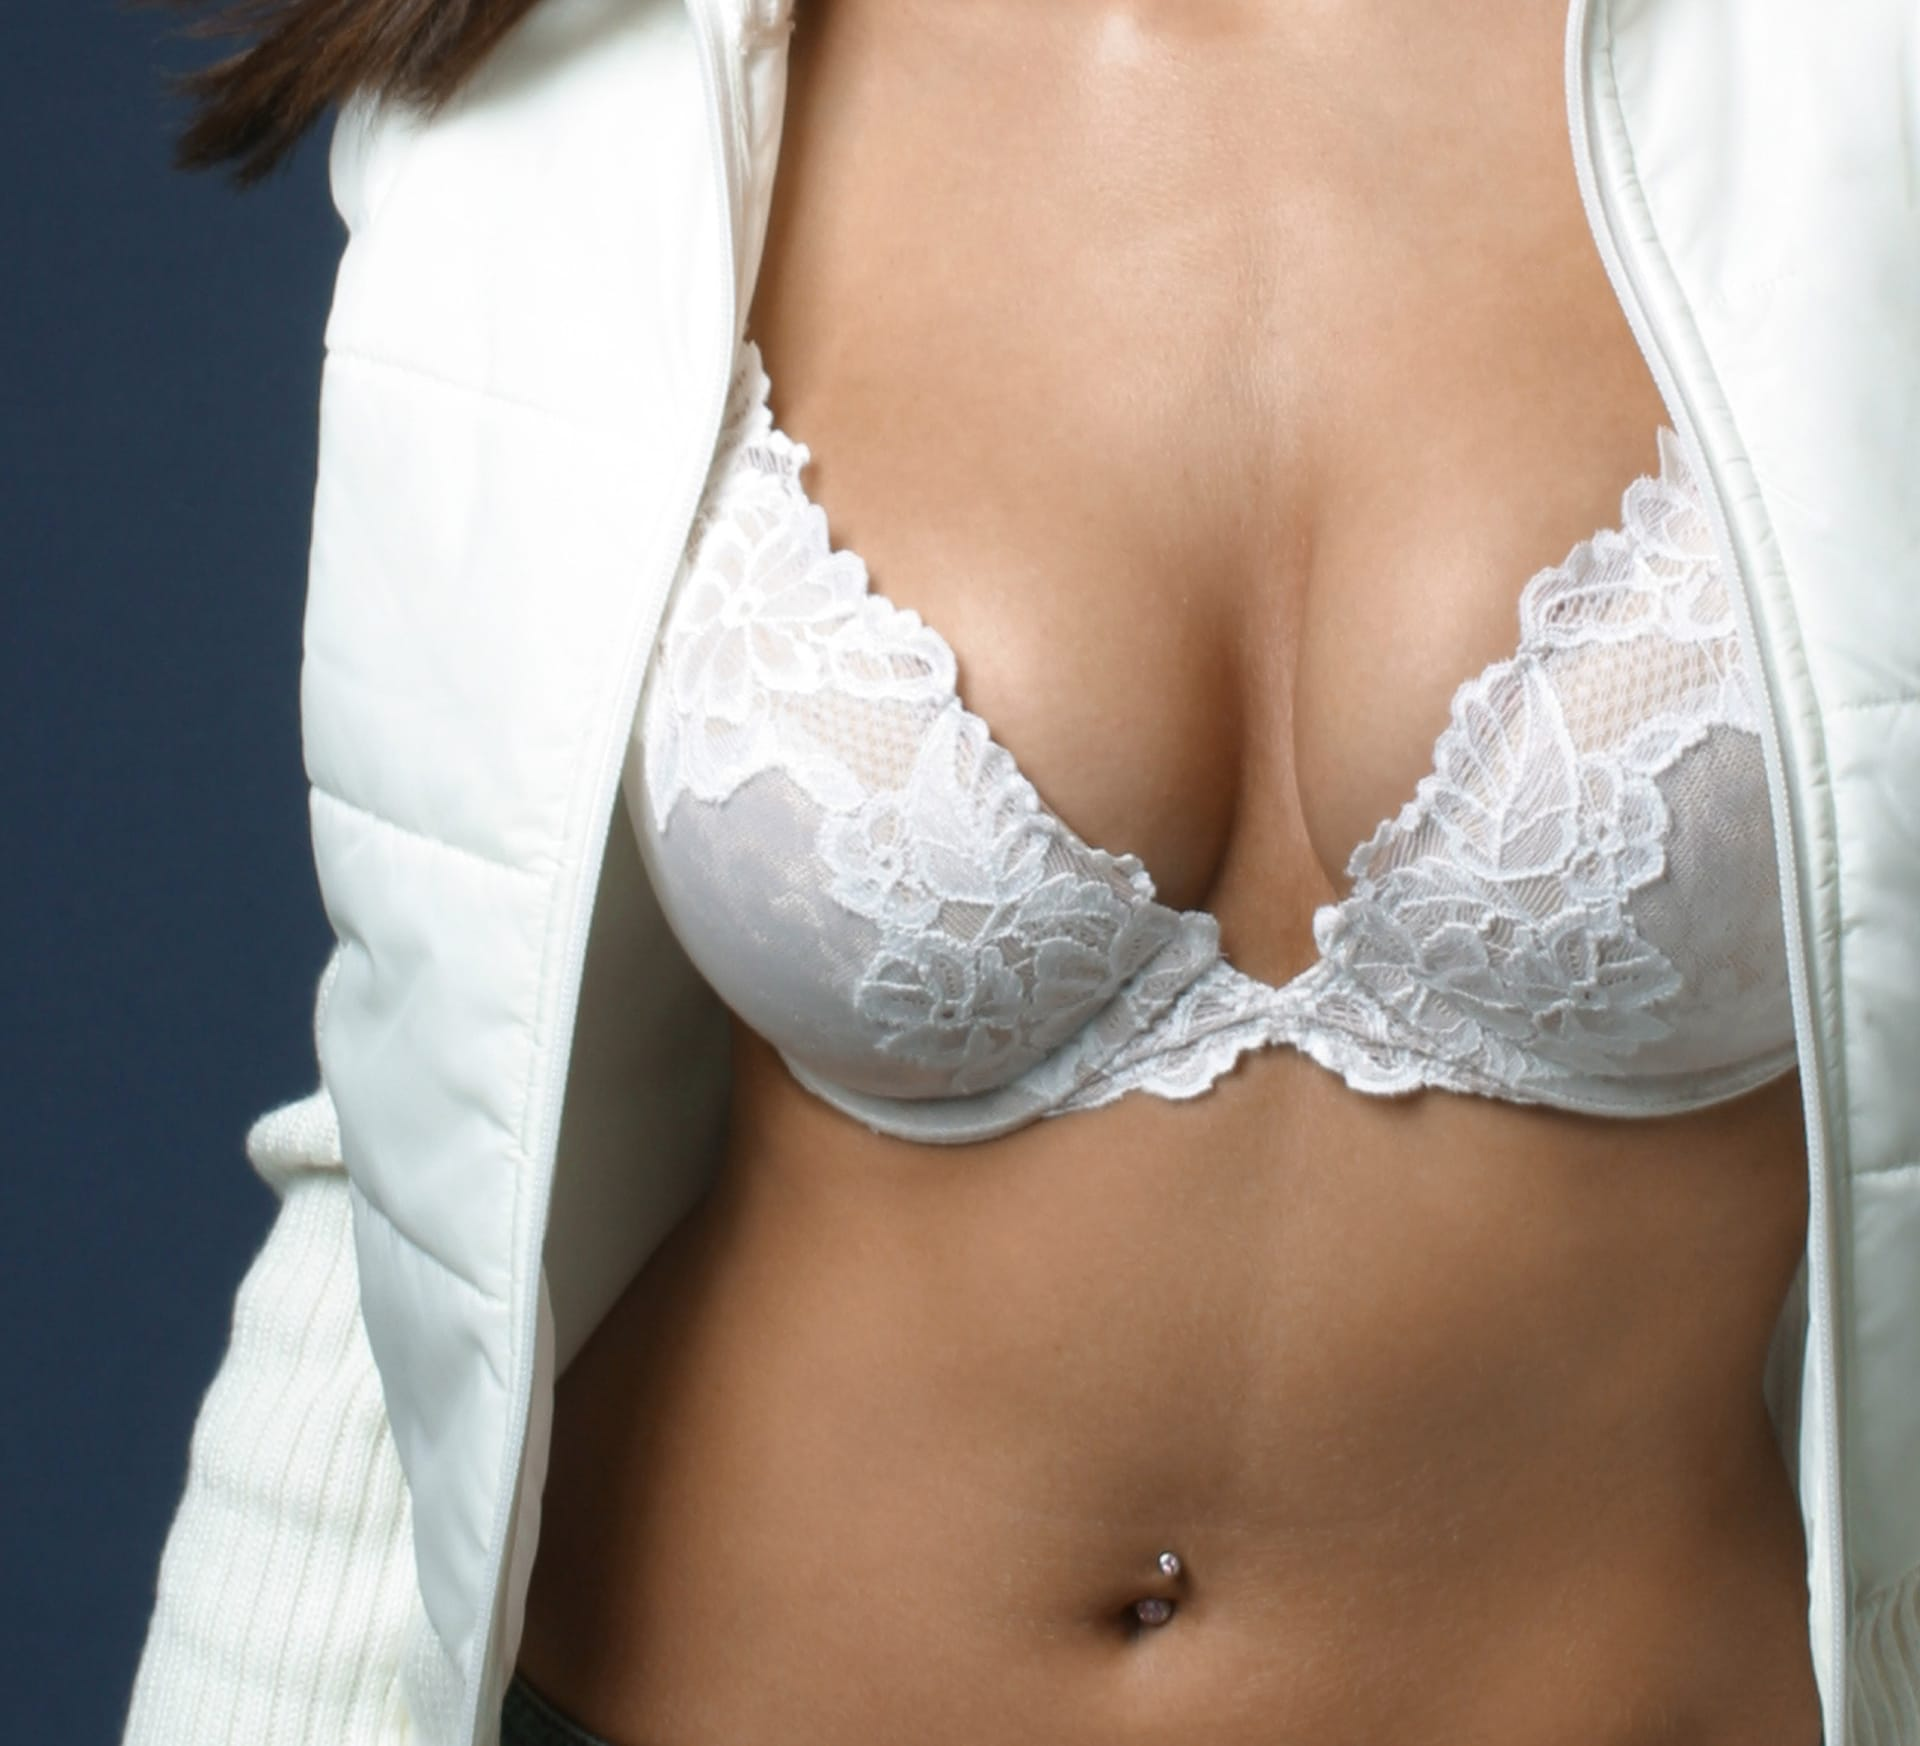 Breast Implant Removal Marina del Rey